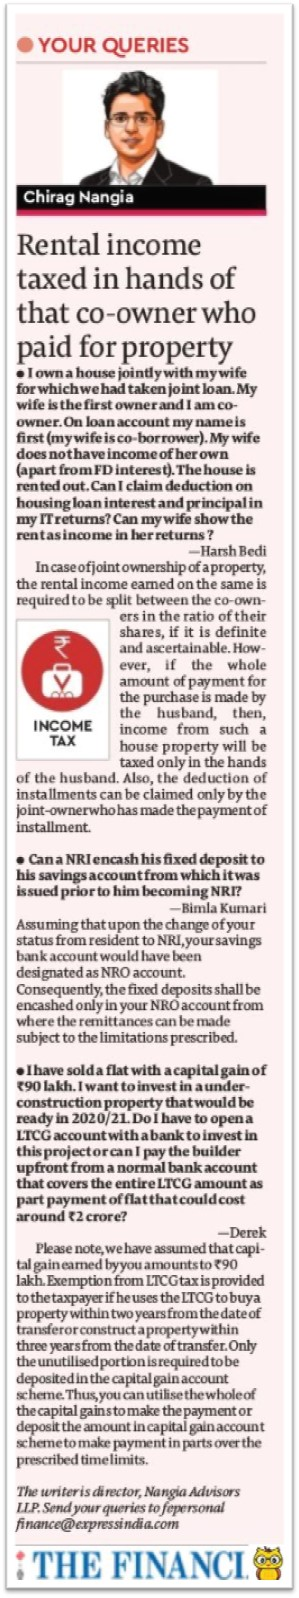 Rental income taxed in hands of that co-owner who paid for property